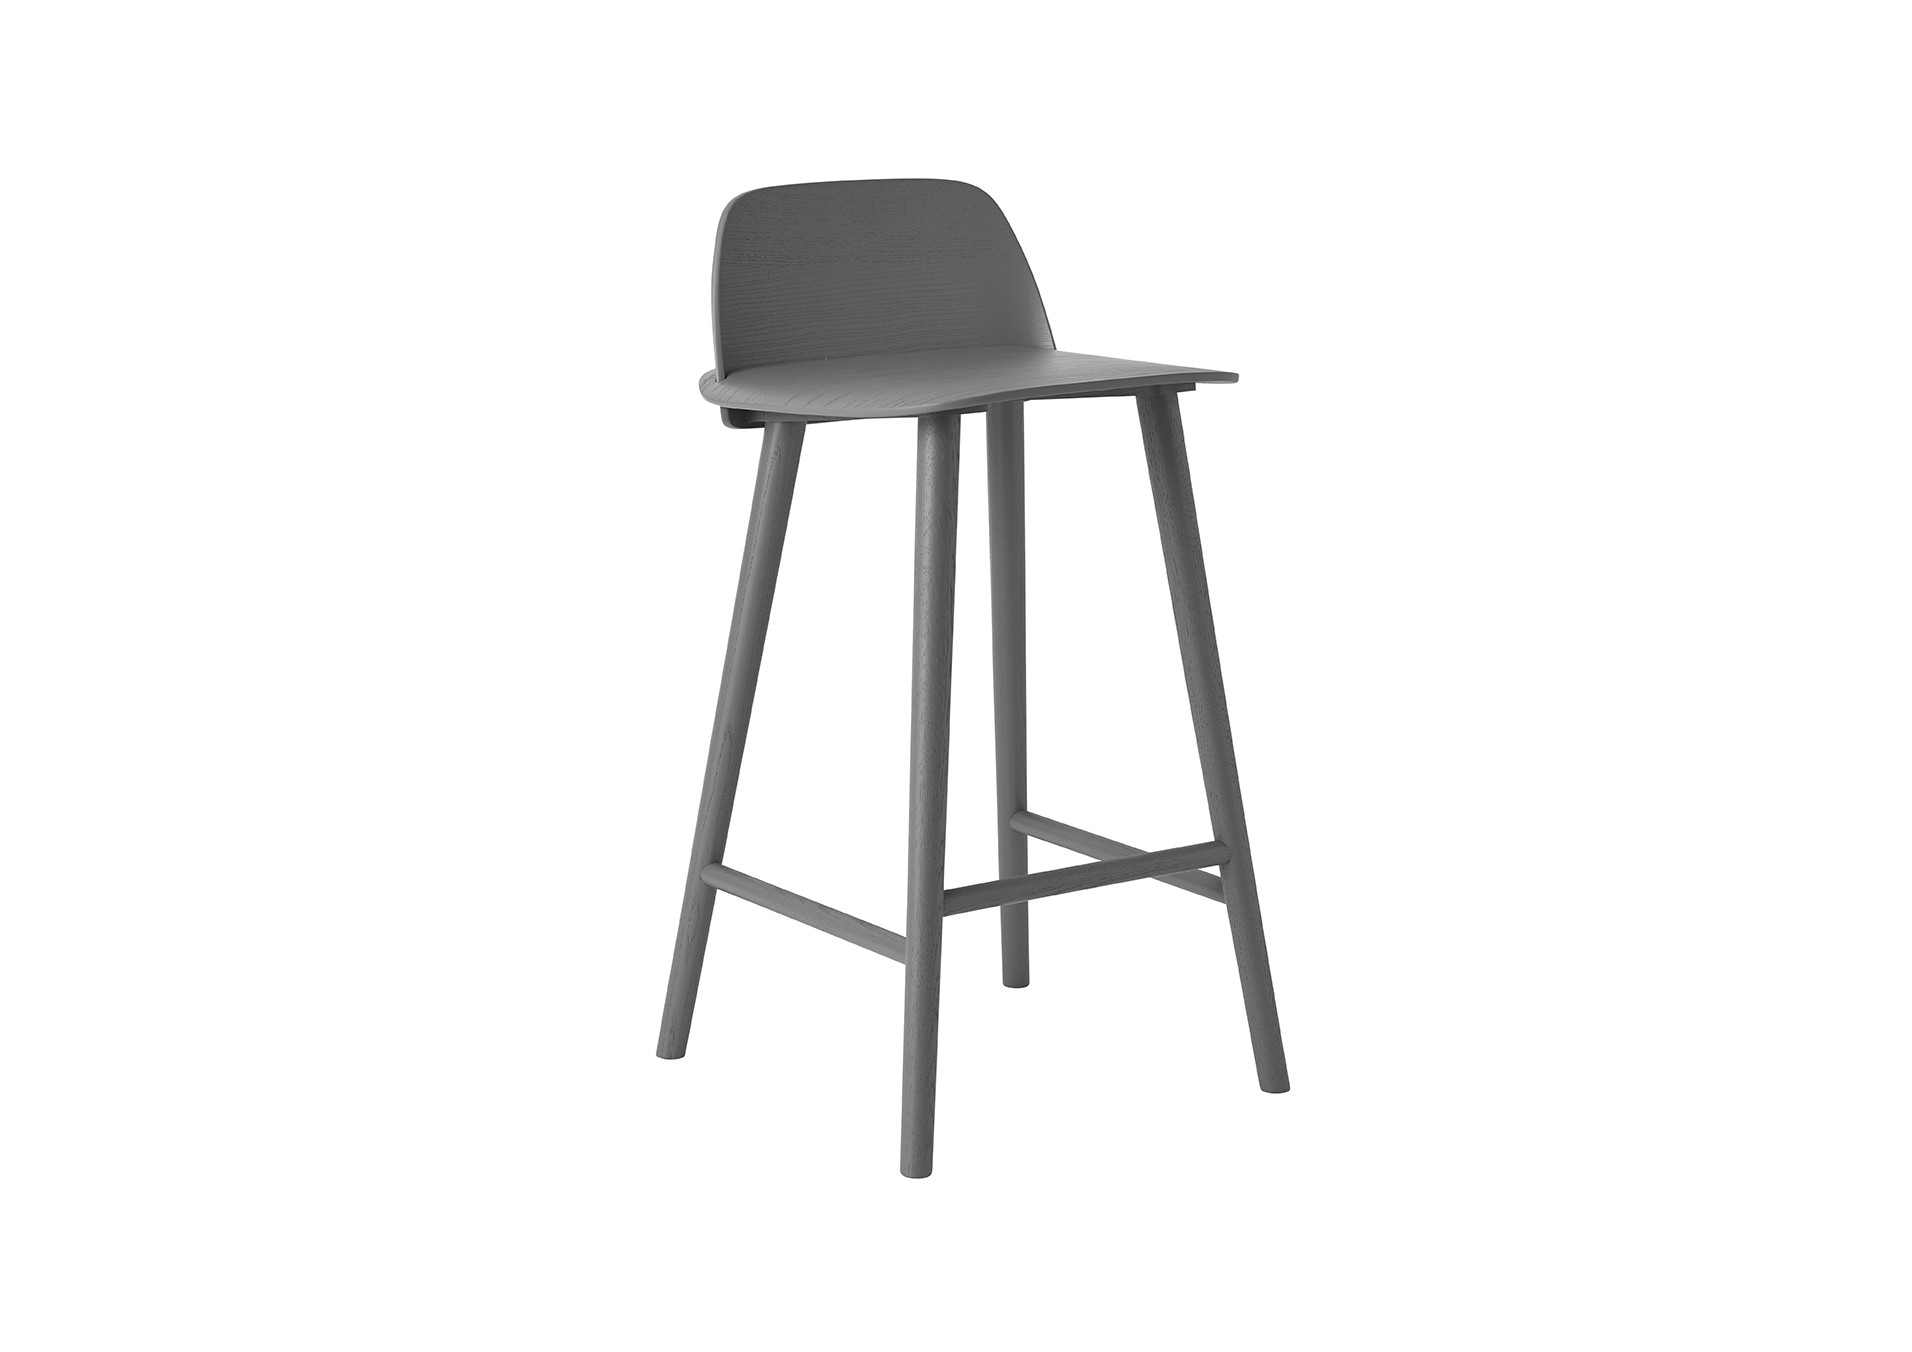 tabouret de bar nerd de muuto gris fonc. Black Bedroom Furniture Sets. Home Design Ideas